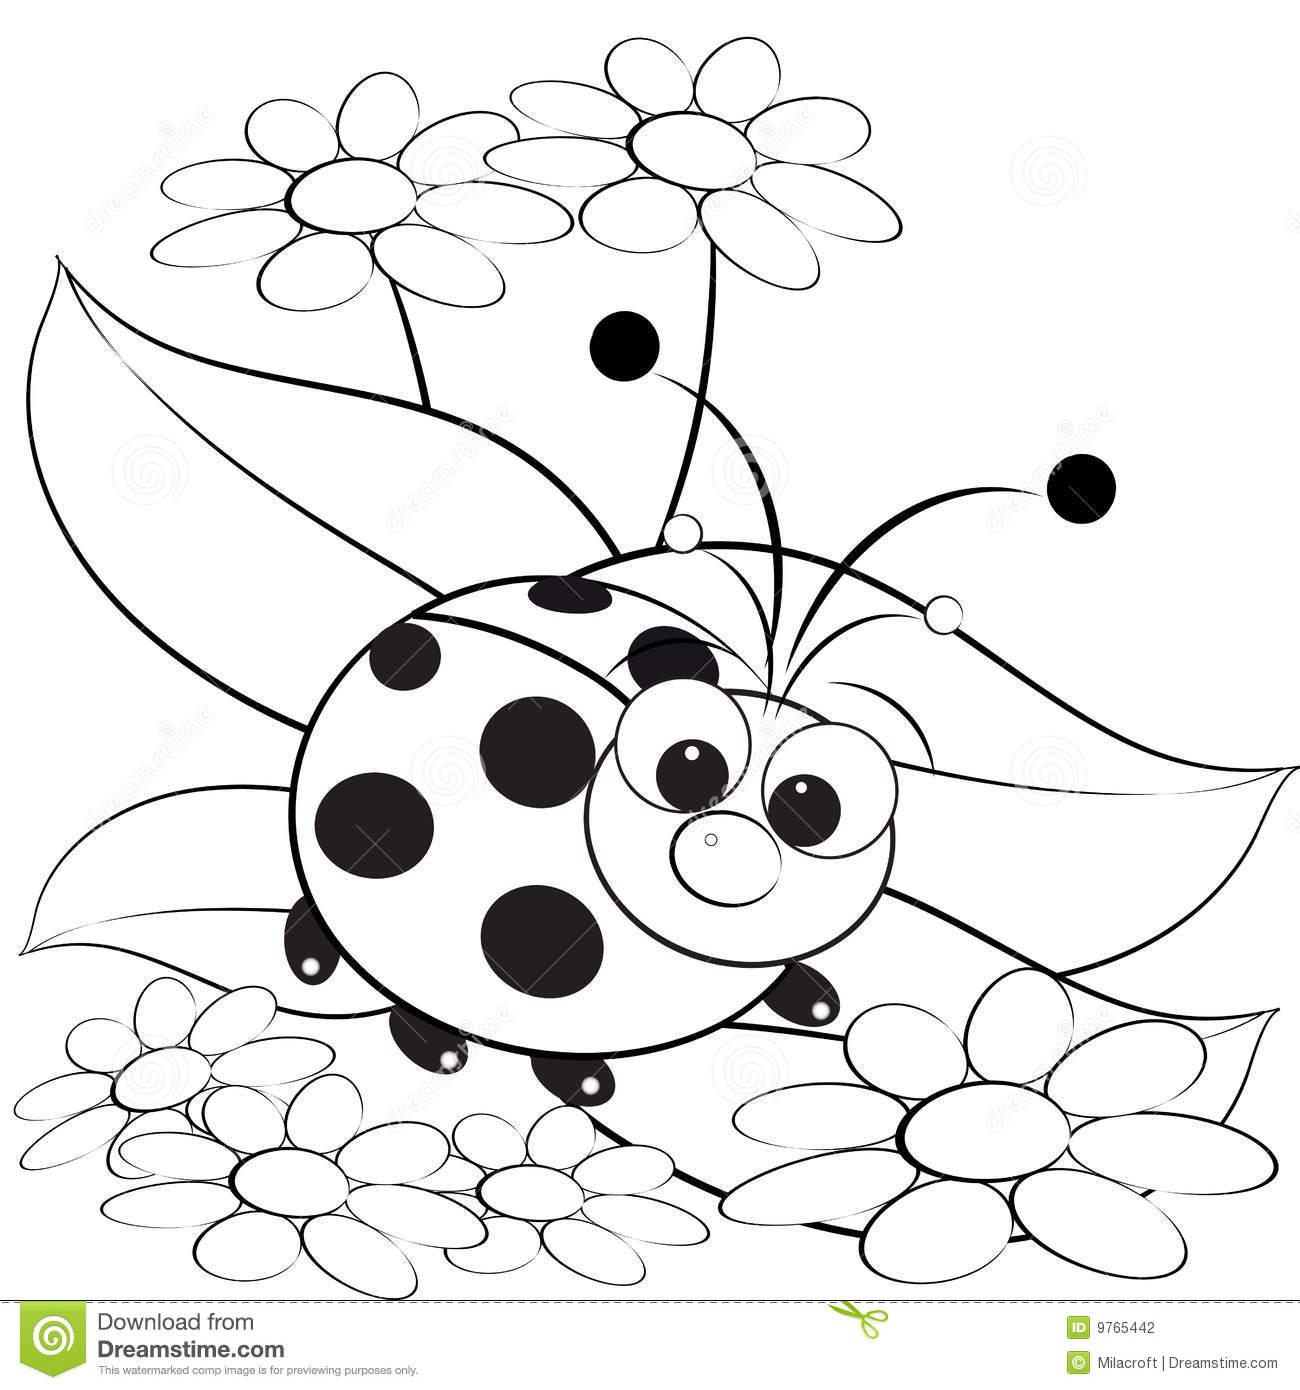 Realistic Ladybug Coloring Pages - Resume Ideas - namanasa.com